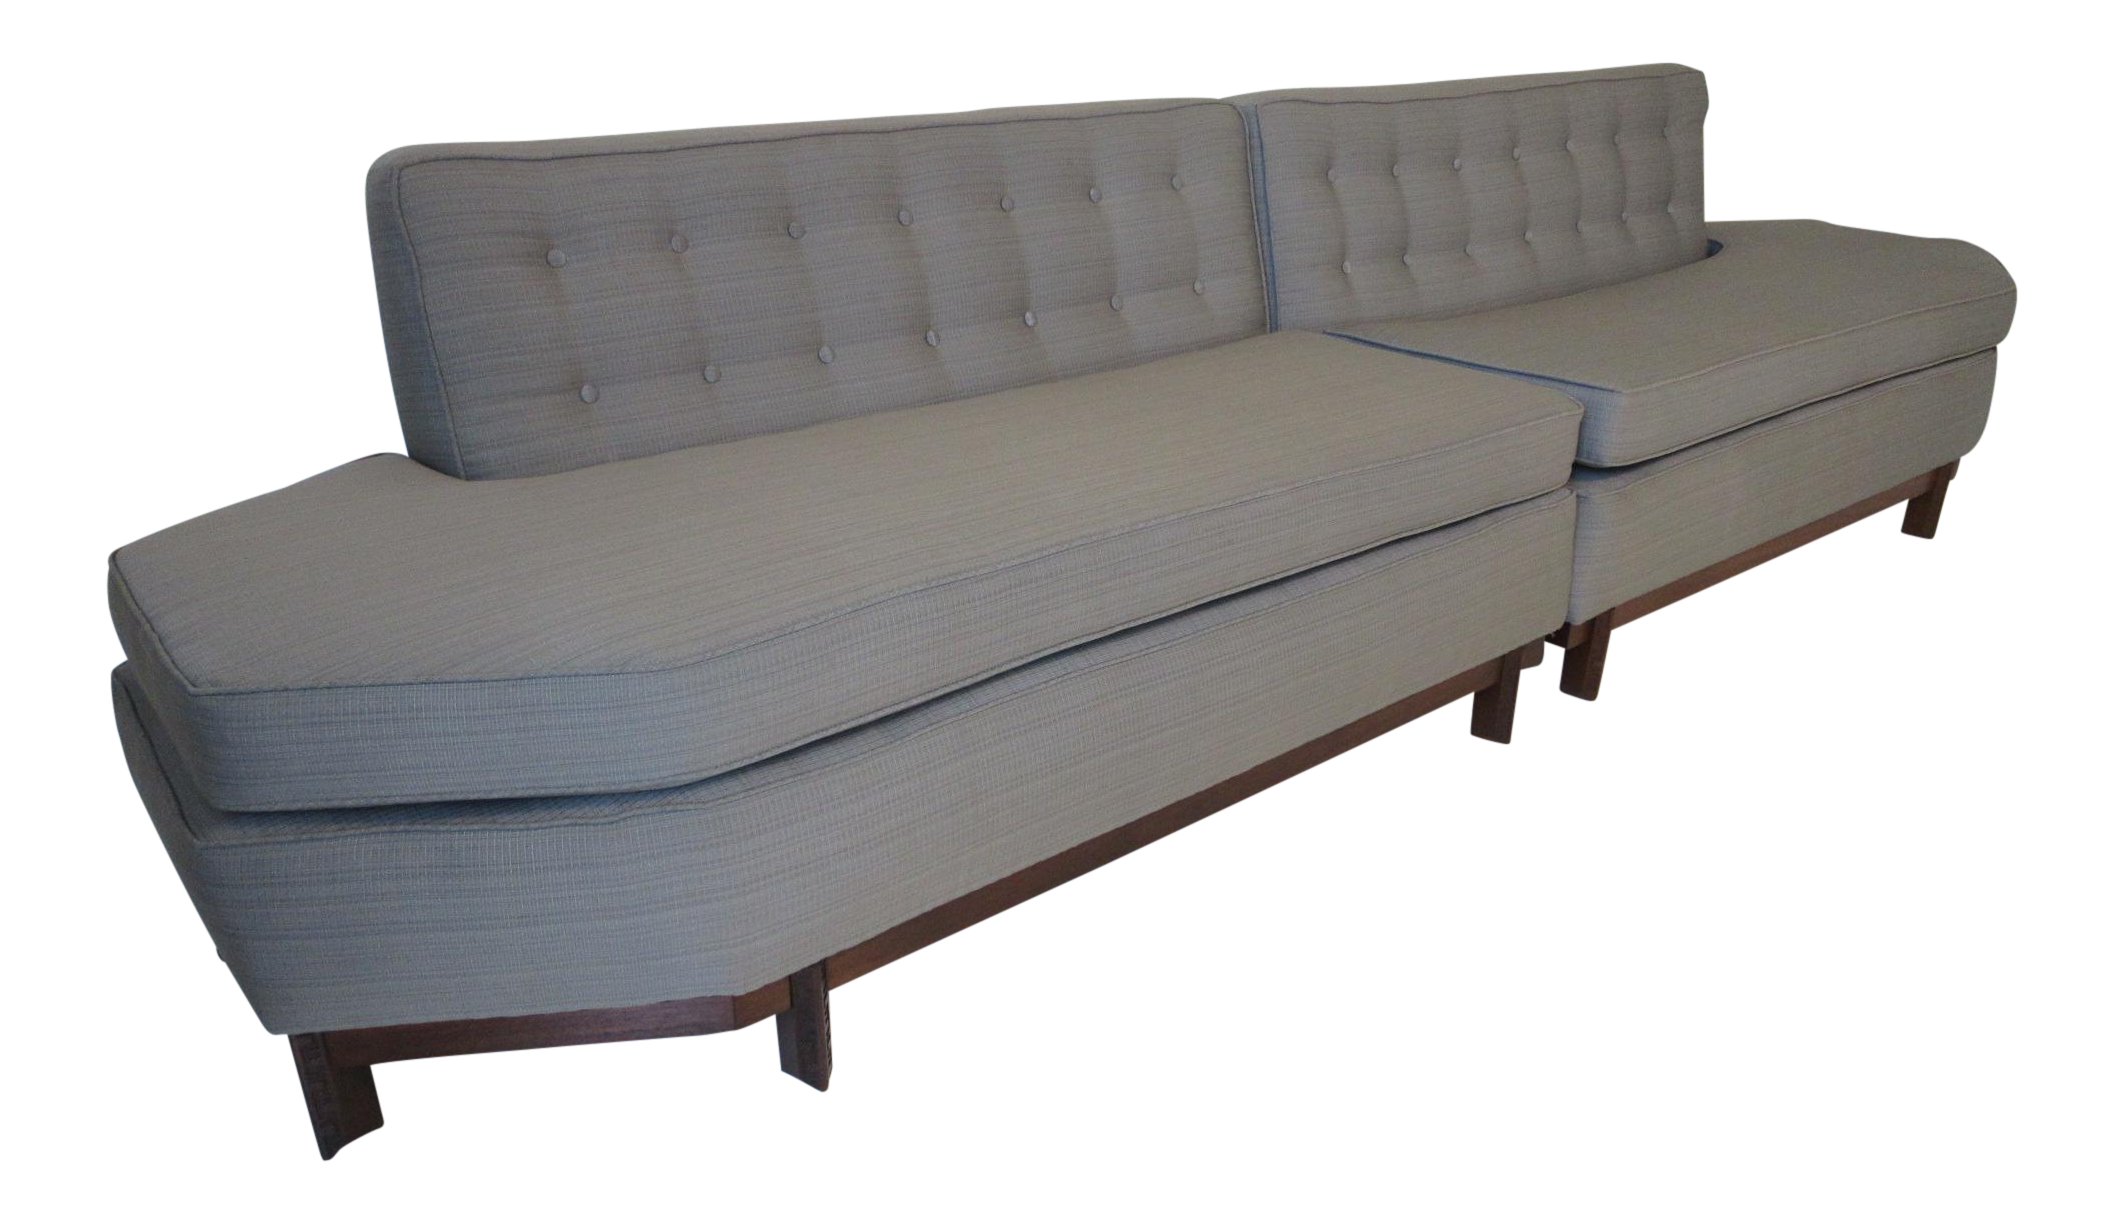 Frank Lloyd Wright Sectional Sofa by Heritage Henredon - Image 1 of 11  sc 1 st  Decaso & Exquisite Frank Lloyd Wright Sectional Sofa by Heritage Henredon ...